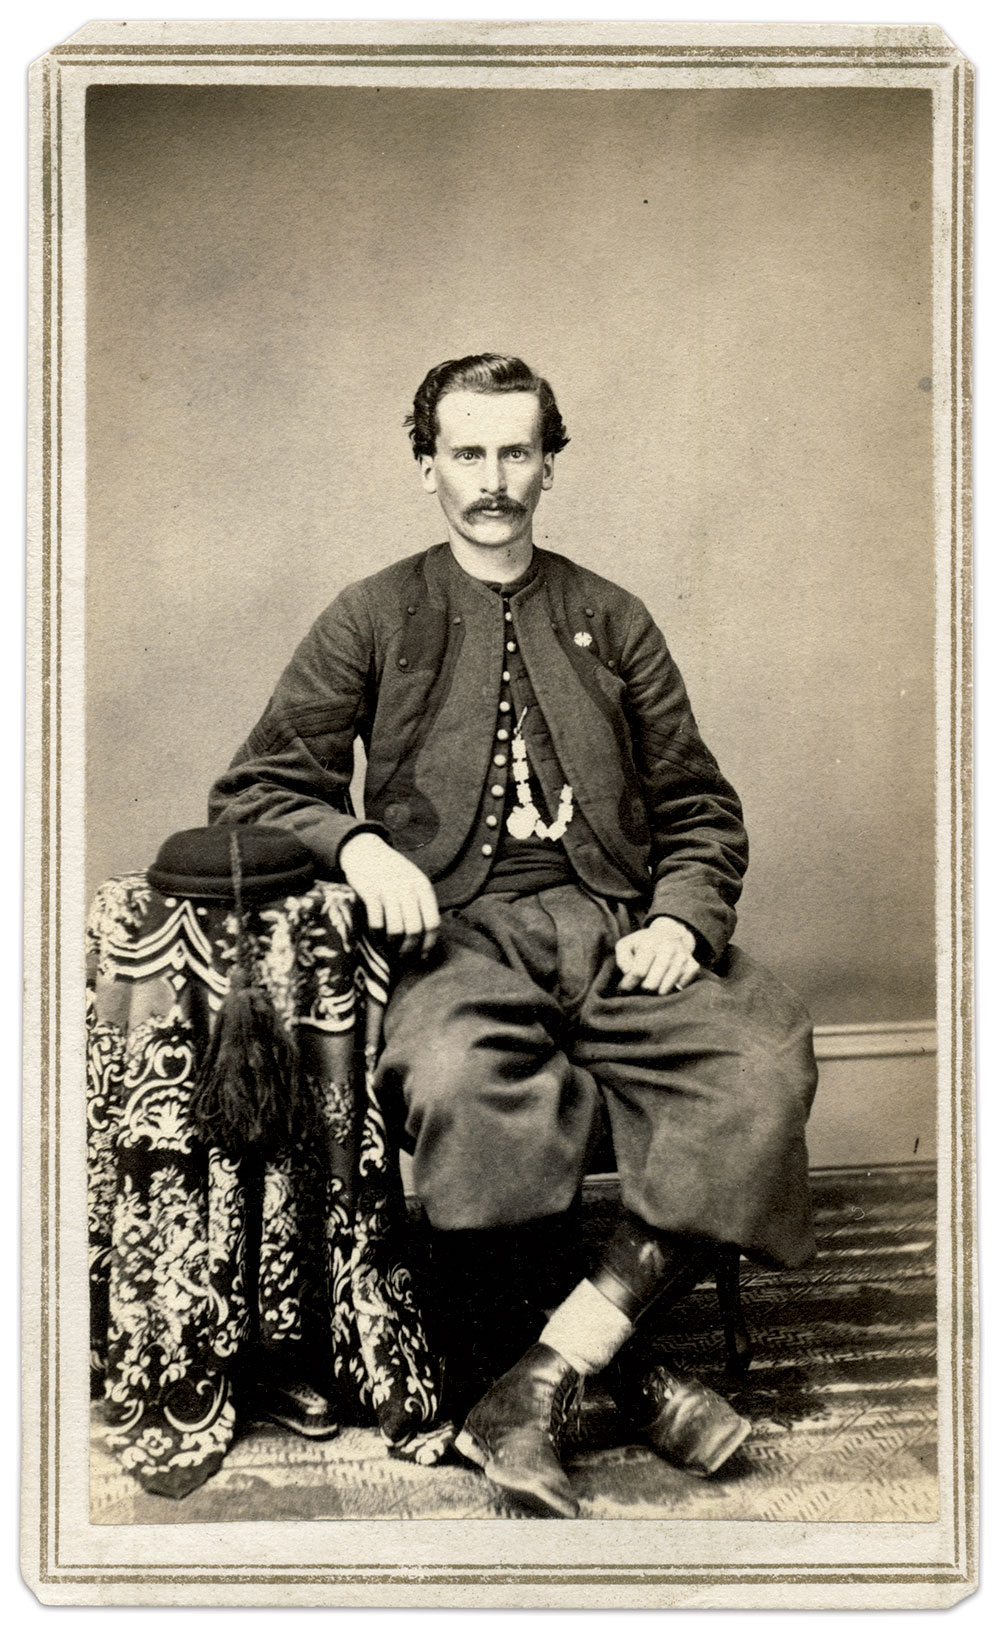 Shipley, pictured asa sergeant in the 44th New York Infantry.Carte de visite by Mills of Penn Yan, N.Y. Jan Gordon Collection.